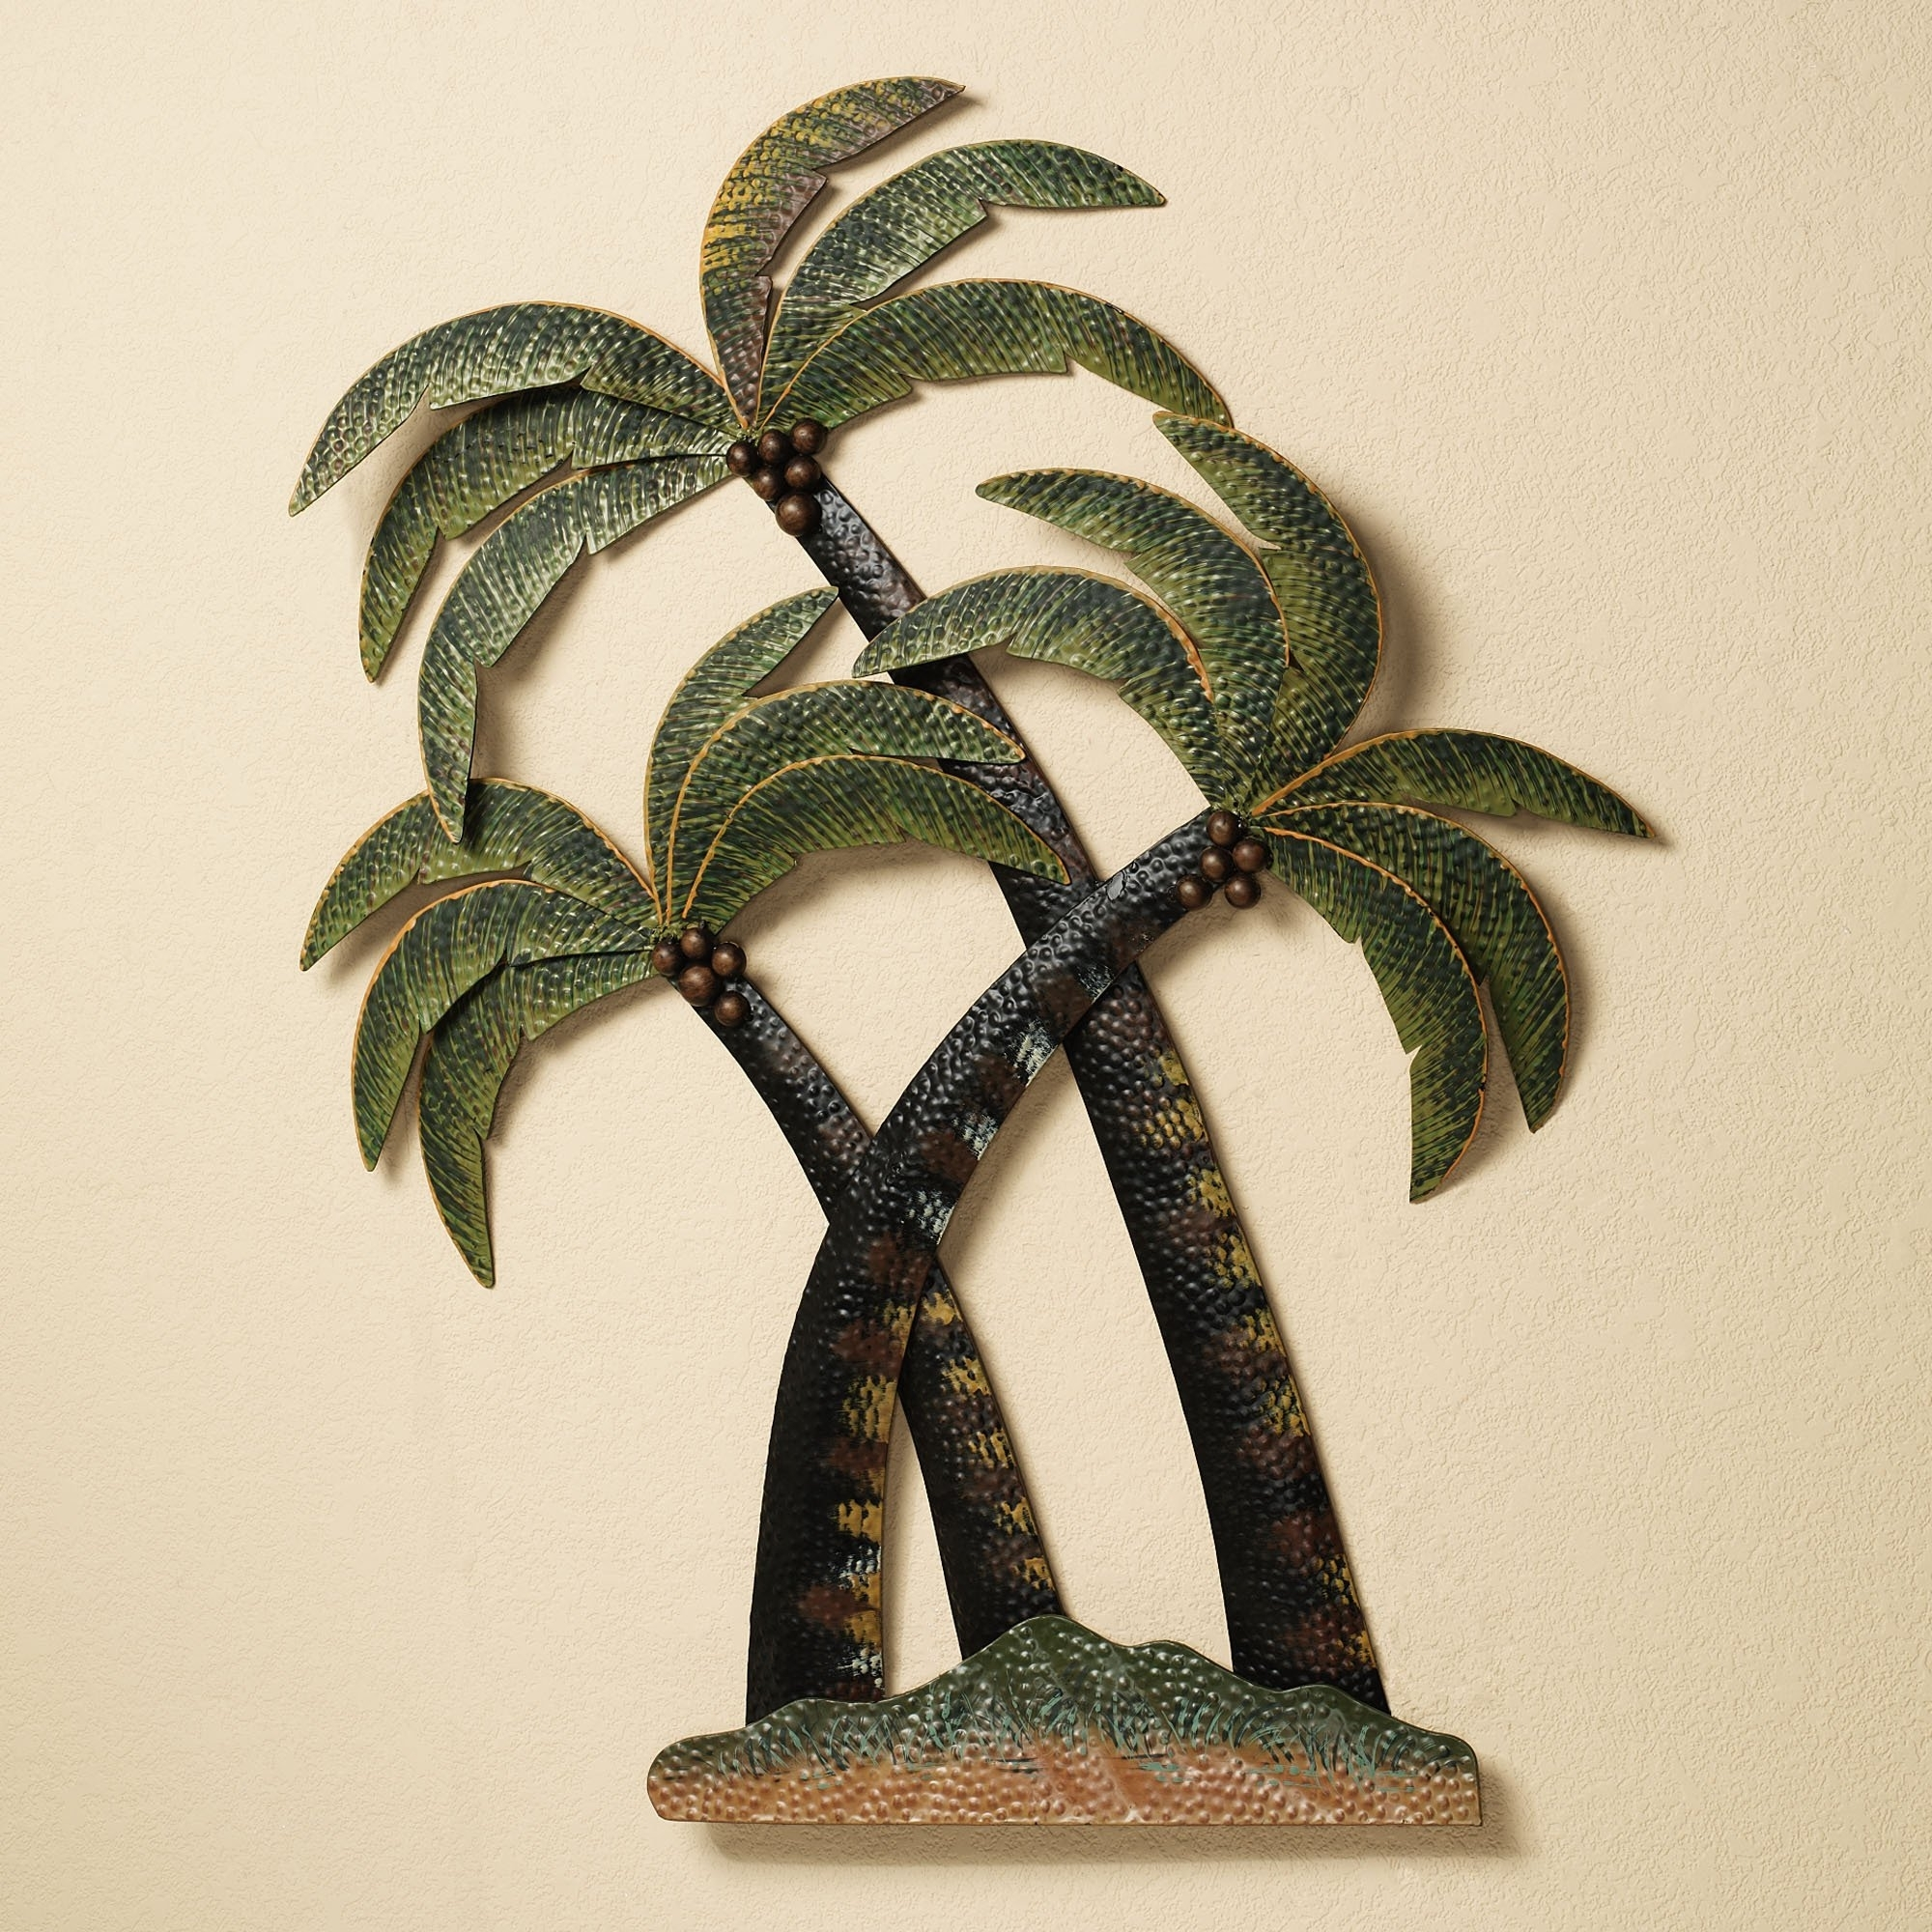 Best And Newest Wall Art Design Ideas: Sculpture Metal Palm Tree Wall Art, Palm Tree With Palm Tree Wall Art (View 2 of 15)